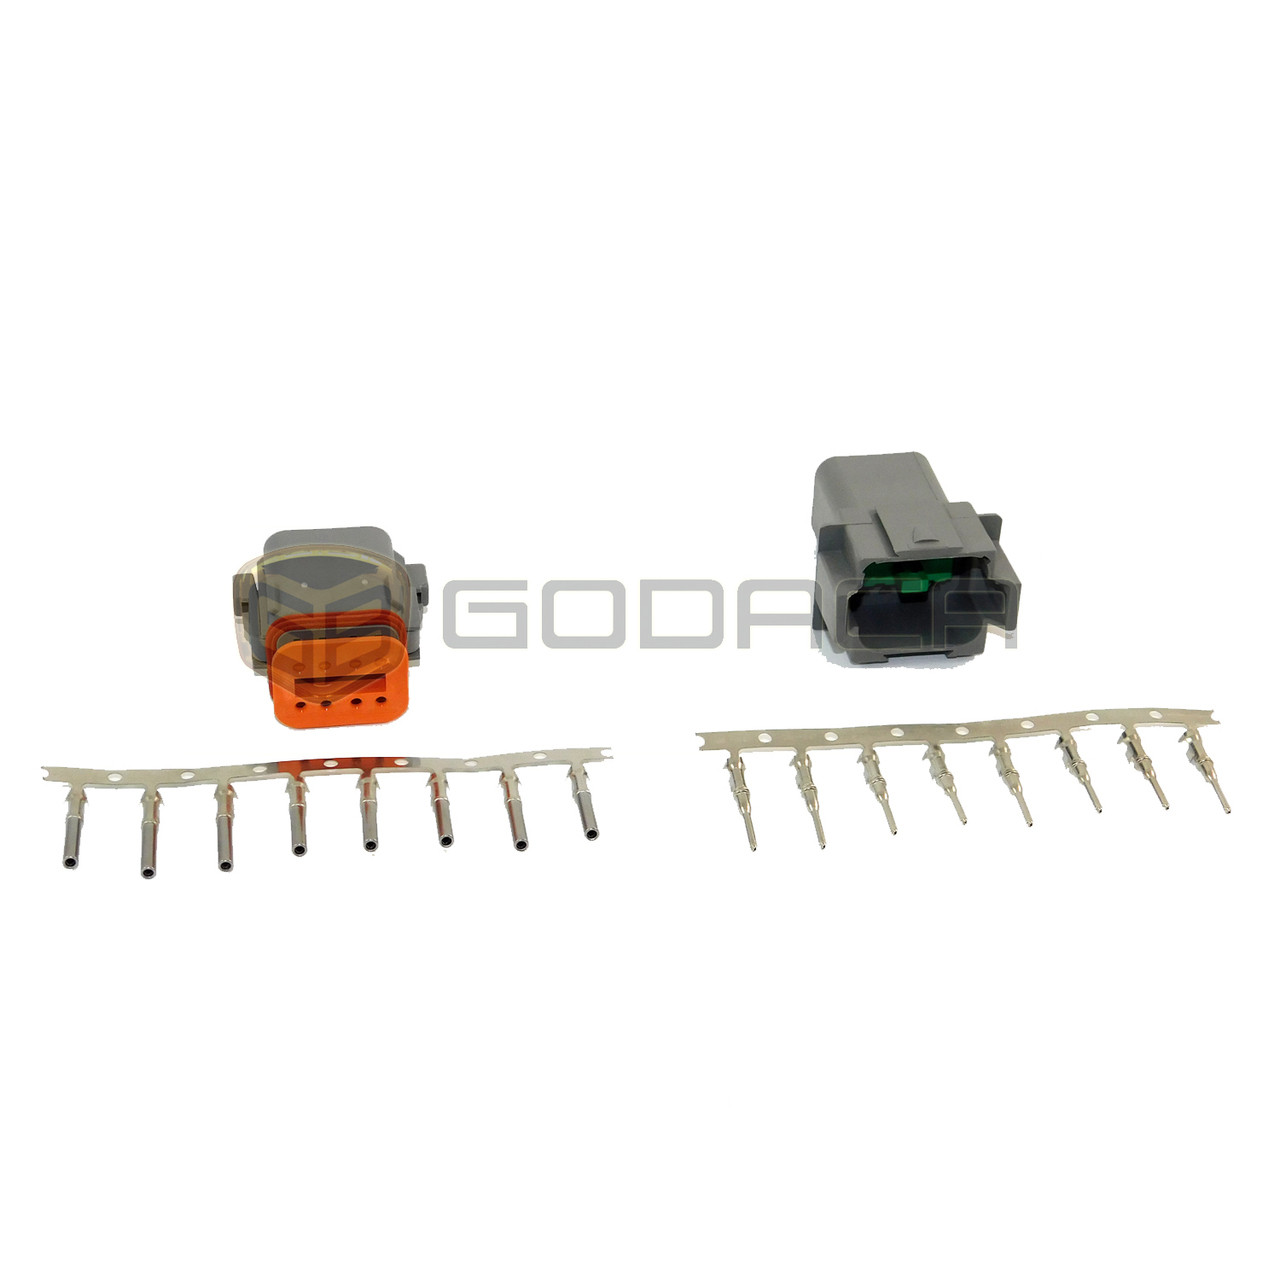 1x 8 Pin Female and male Connector DTM Deutsch 08SA 08PA w//out wire